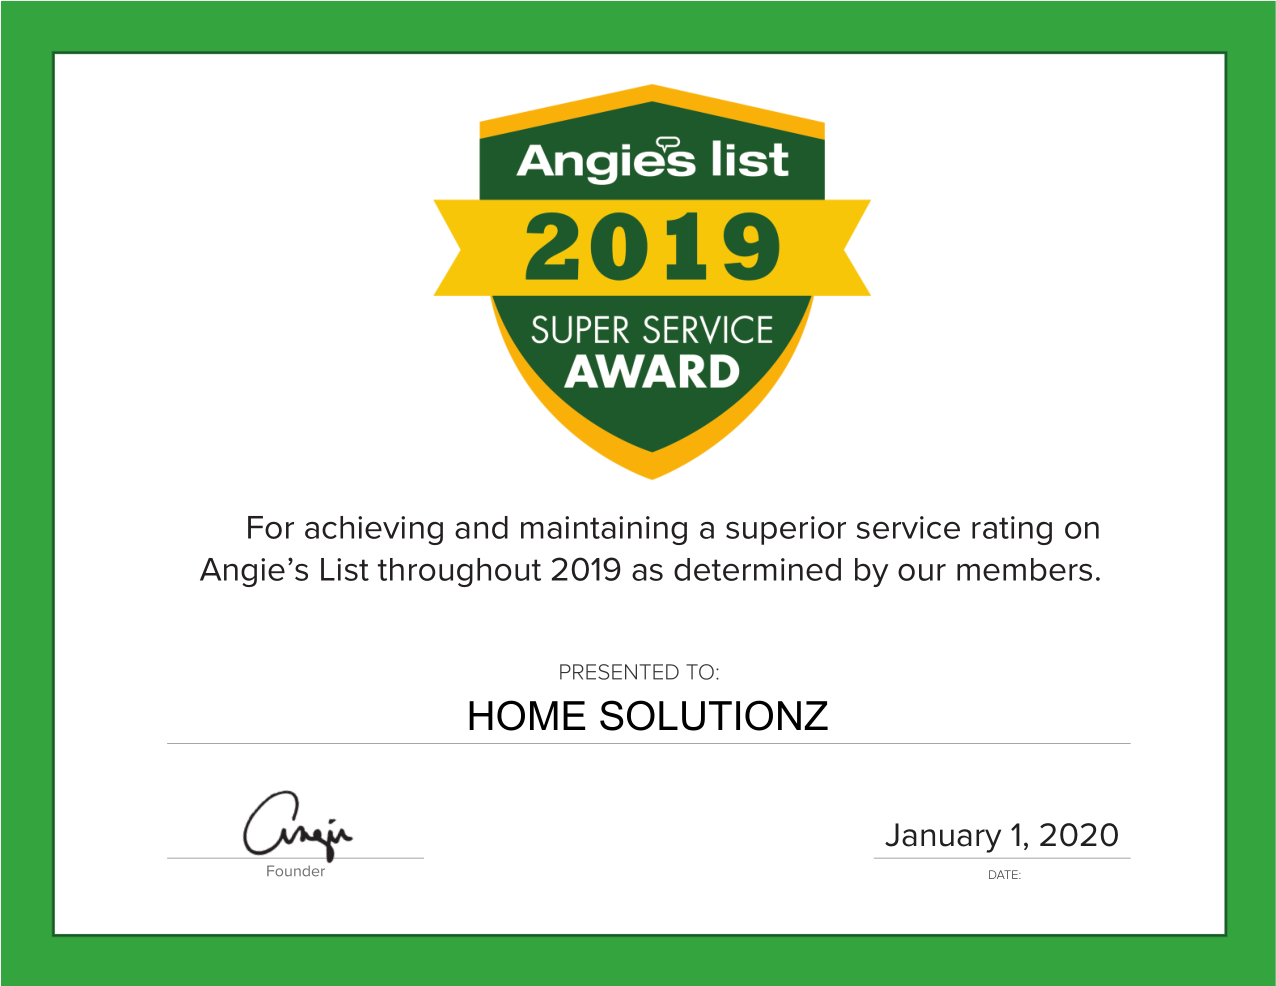 Home Solutionz Earns 2019 Angie's List Super Service Award